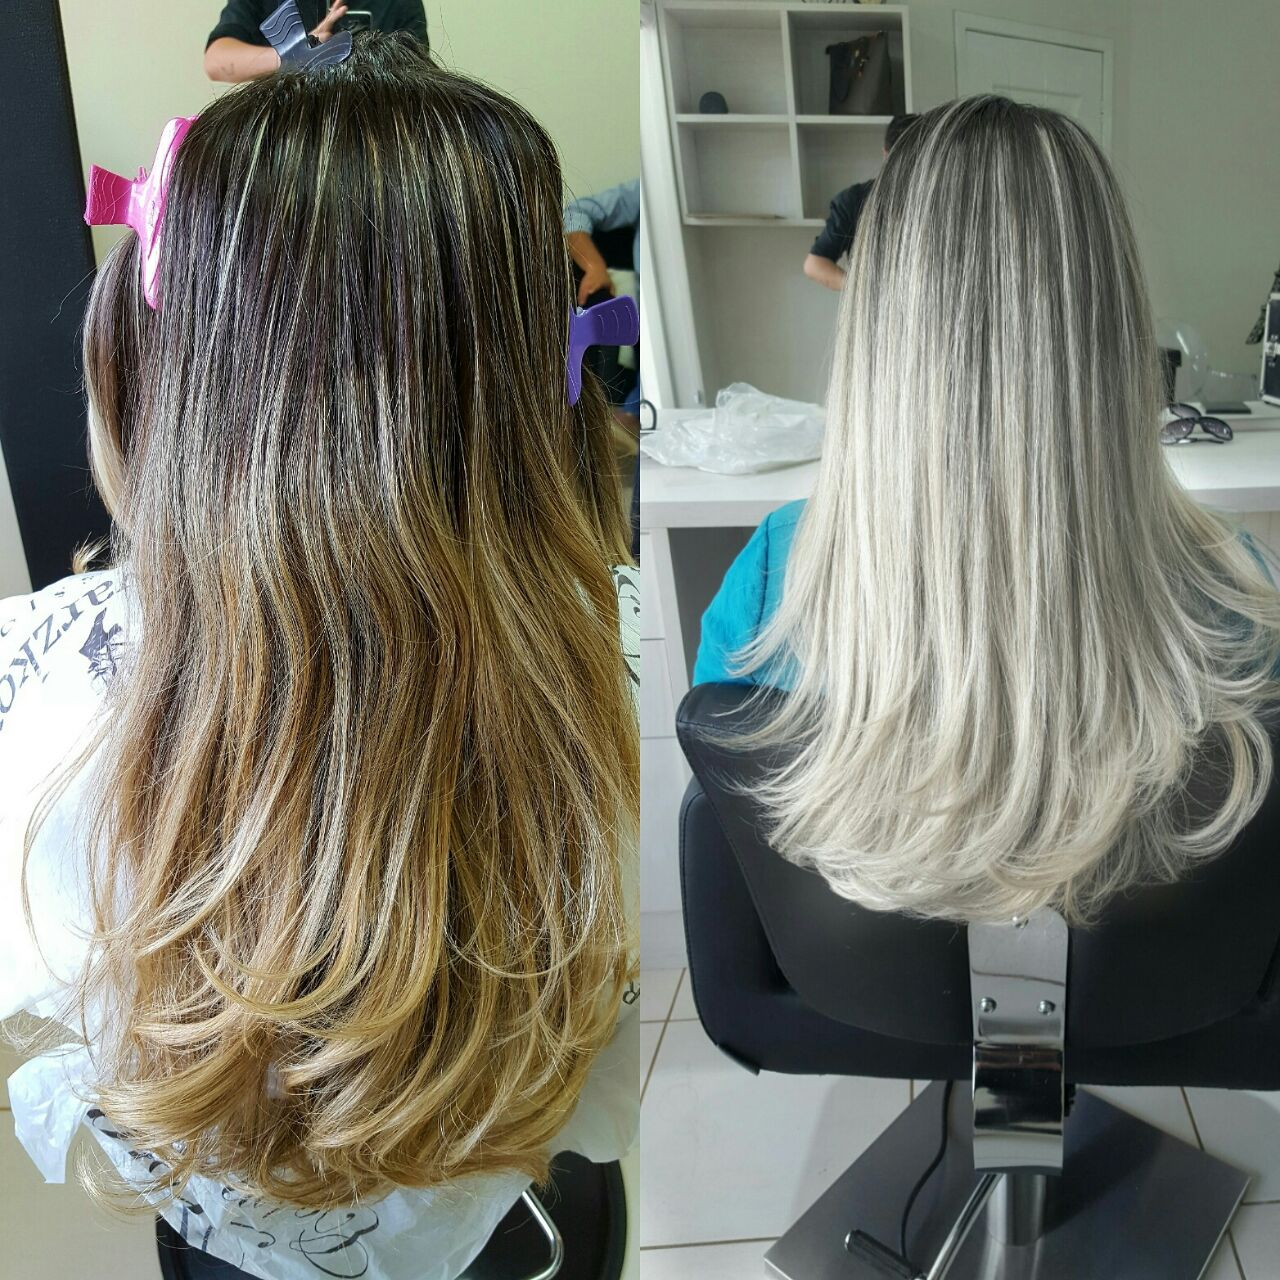 Makeover by Daniel Paixao